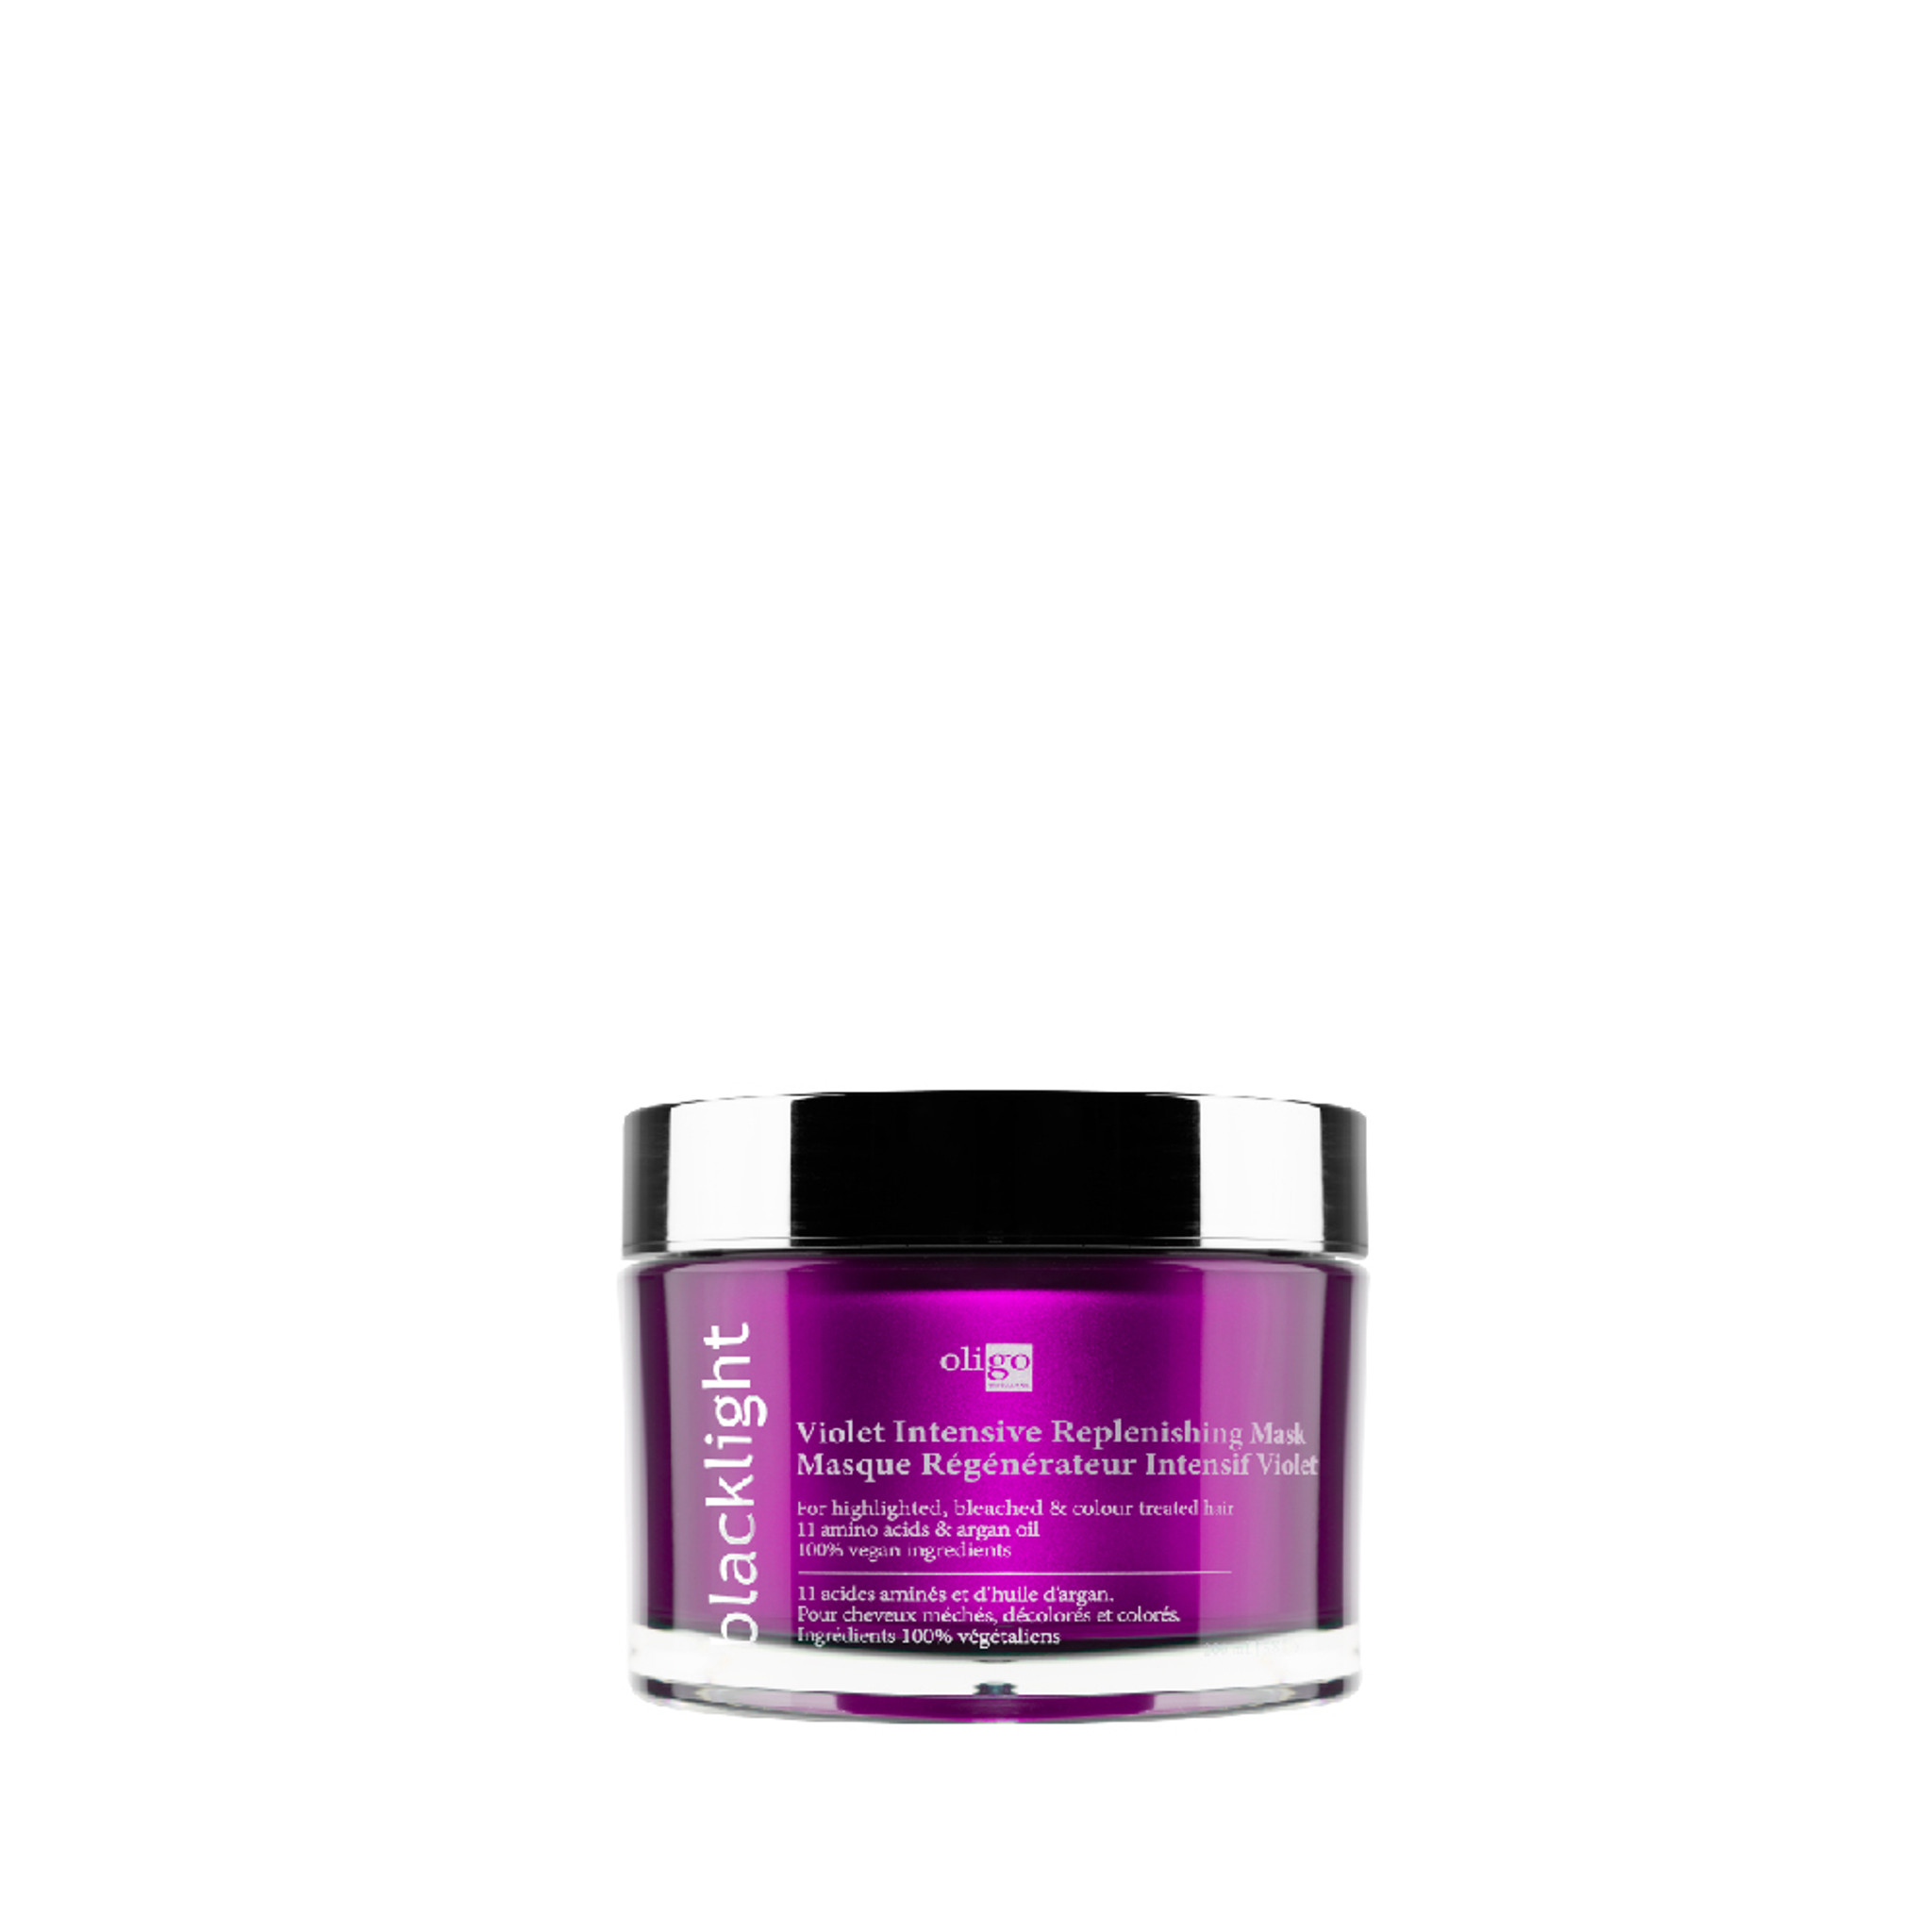 Oligo Intensive Replenishing Mask Violet formula 200ml by Shop Salon Support - buy Oligo blacklight, Hair Lightening System, Blonde Shampoo and Conditioner. Salon Support are Hair & Barber Barbershop Trade Wholesale Hairdressing Supplies Melbourne Australia. Experience the unmatched lifting power accompanied by a 100% vegan aftercare line. Oligo Pro Blacklight lightening system is the key to navigating your way through the complete spectrum of blondes.